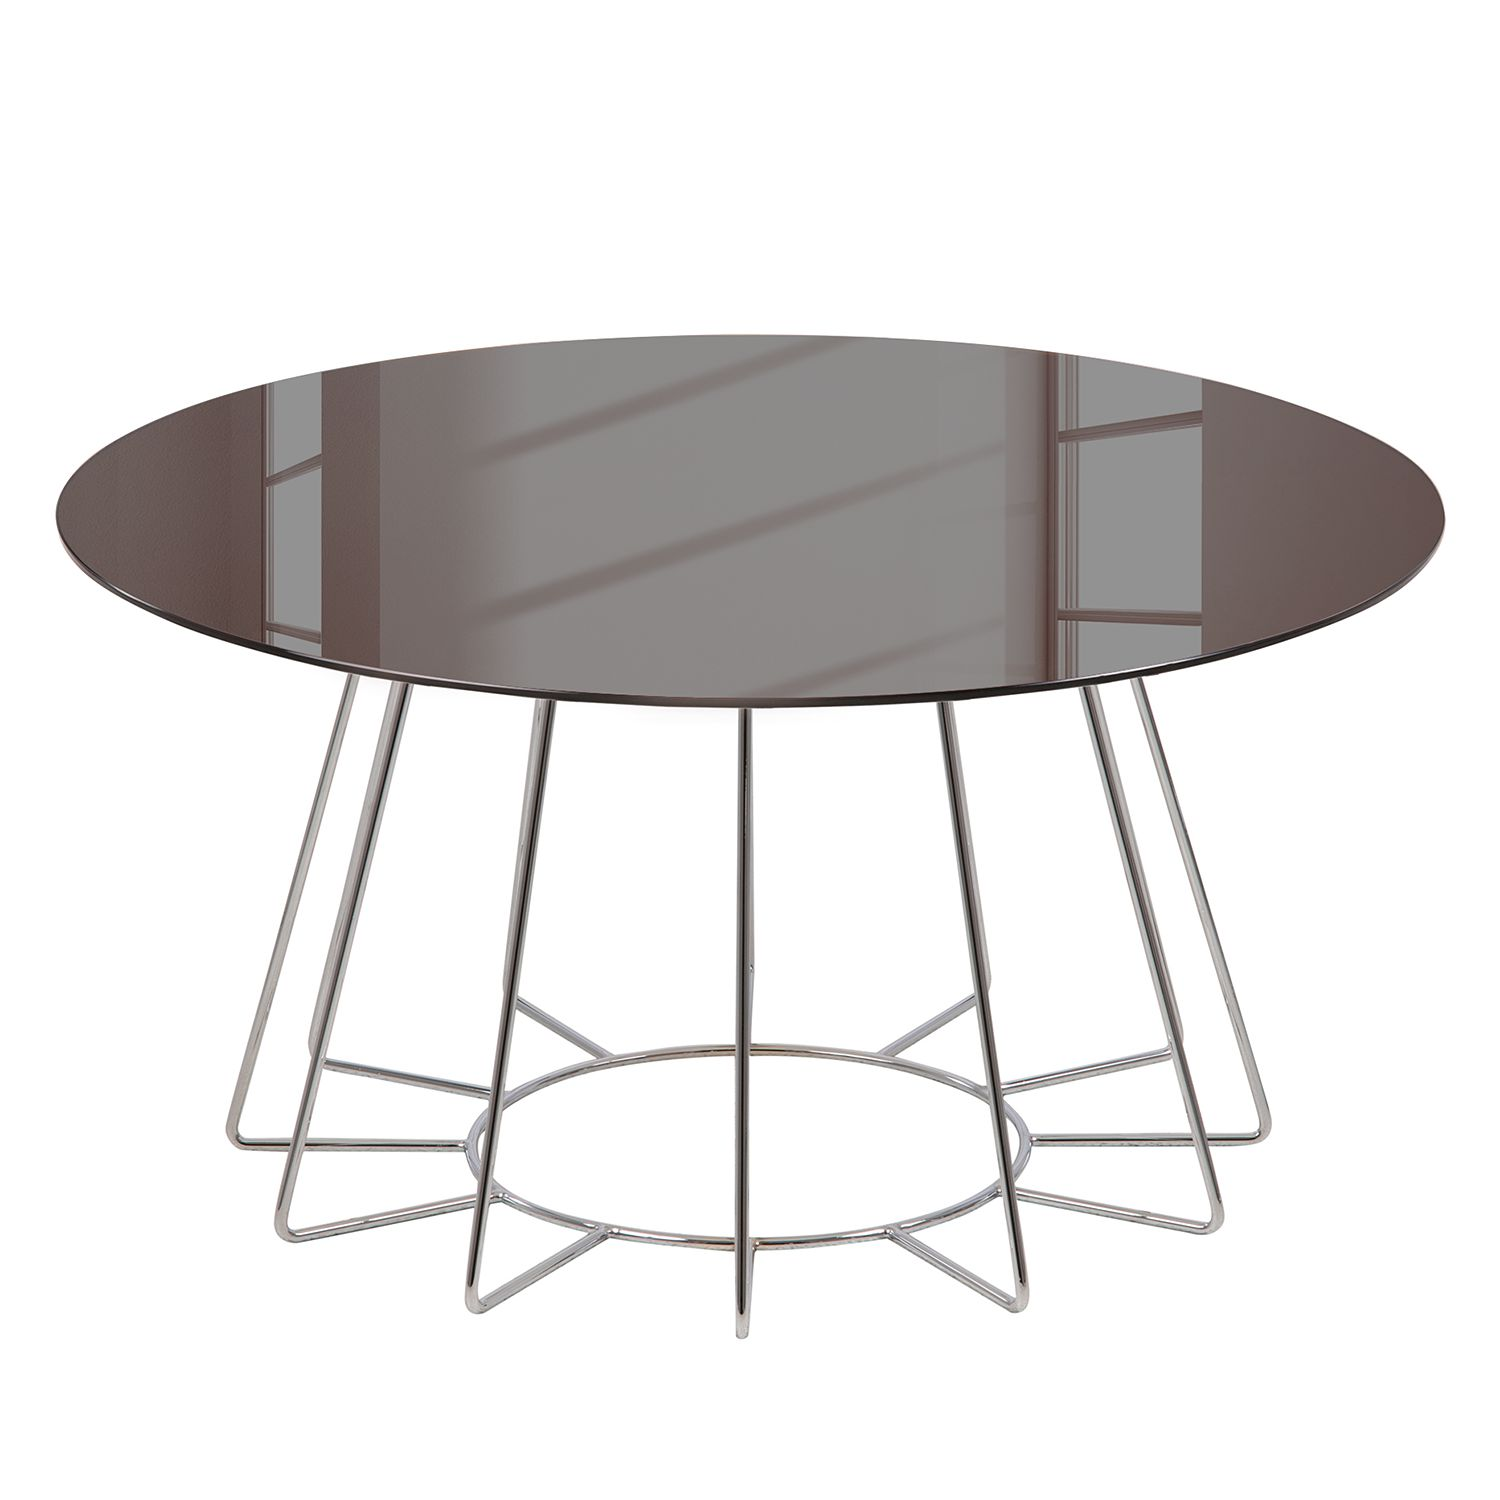 Table basse Motegi - Verre / Métal - Bronze / Chrome, Jack and Alice